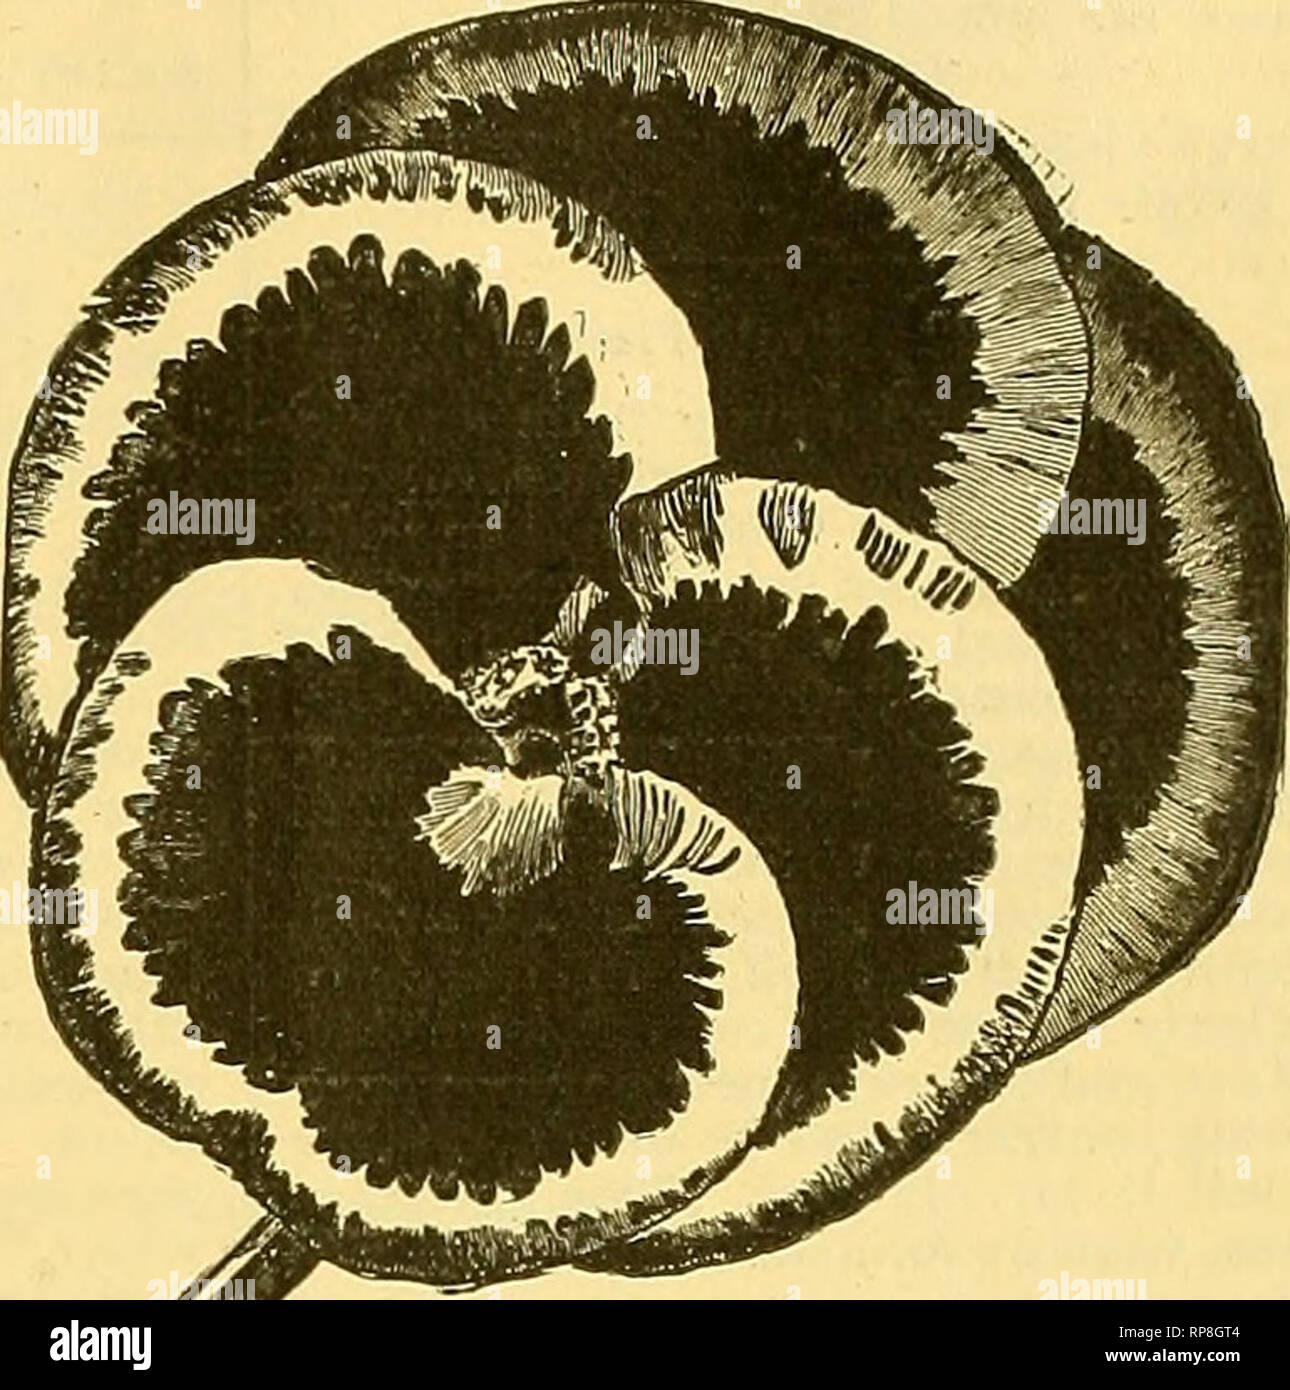 """. The American florist : a weekly journal for the trade. Floriculture; Florists. NEW />Yri AMFM p^""""®'*'^"""" CROP j I v^I_/aItII_Ii qisanteum We have received from a ctlebrated specialist a large stock of the f.hoicest Cyclamen persicum giganleum. Sowil any time before October, they ^'erminate readily and make fine plants for next season. We can'furnish in the foUowinp four distincccolors, also in mixture: 100 iroo sds. sds. Pure White $ h J6.00 White with Carmine Eye . .?!> 6.00 Deep Rose 76 6.00 Blood Red 75 600 FinestMixed 60 5.00 250 seeds or over at the lOtO rate. NEW CROP  - Stock Image"""